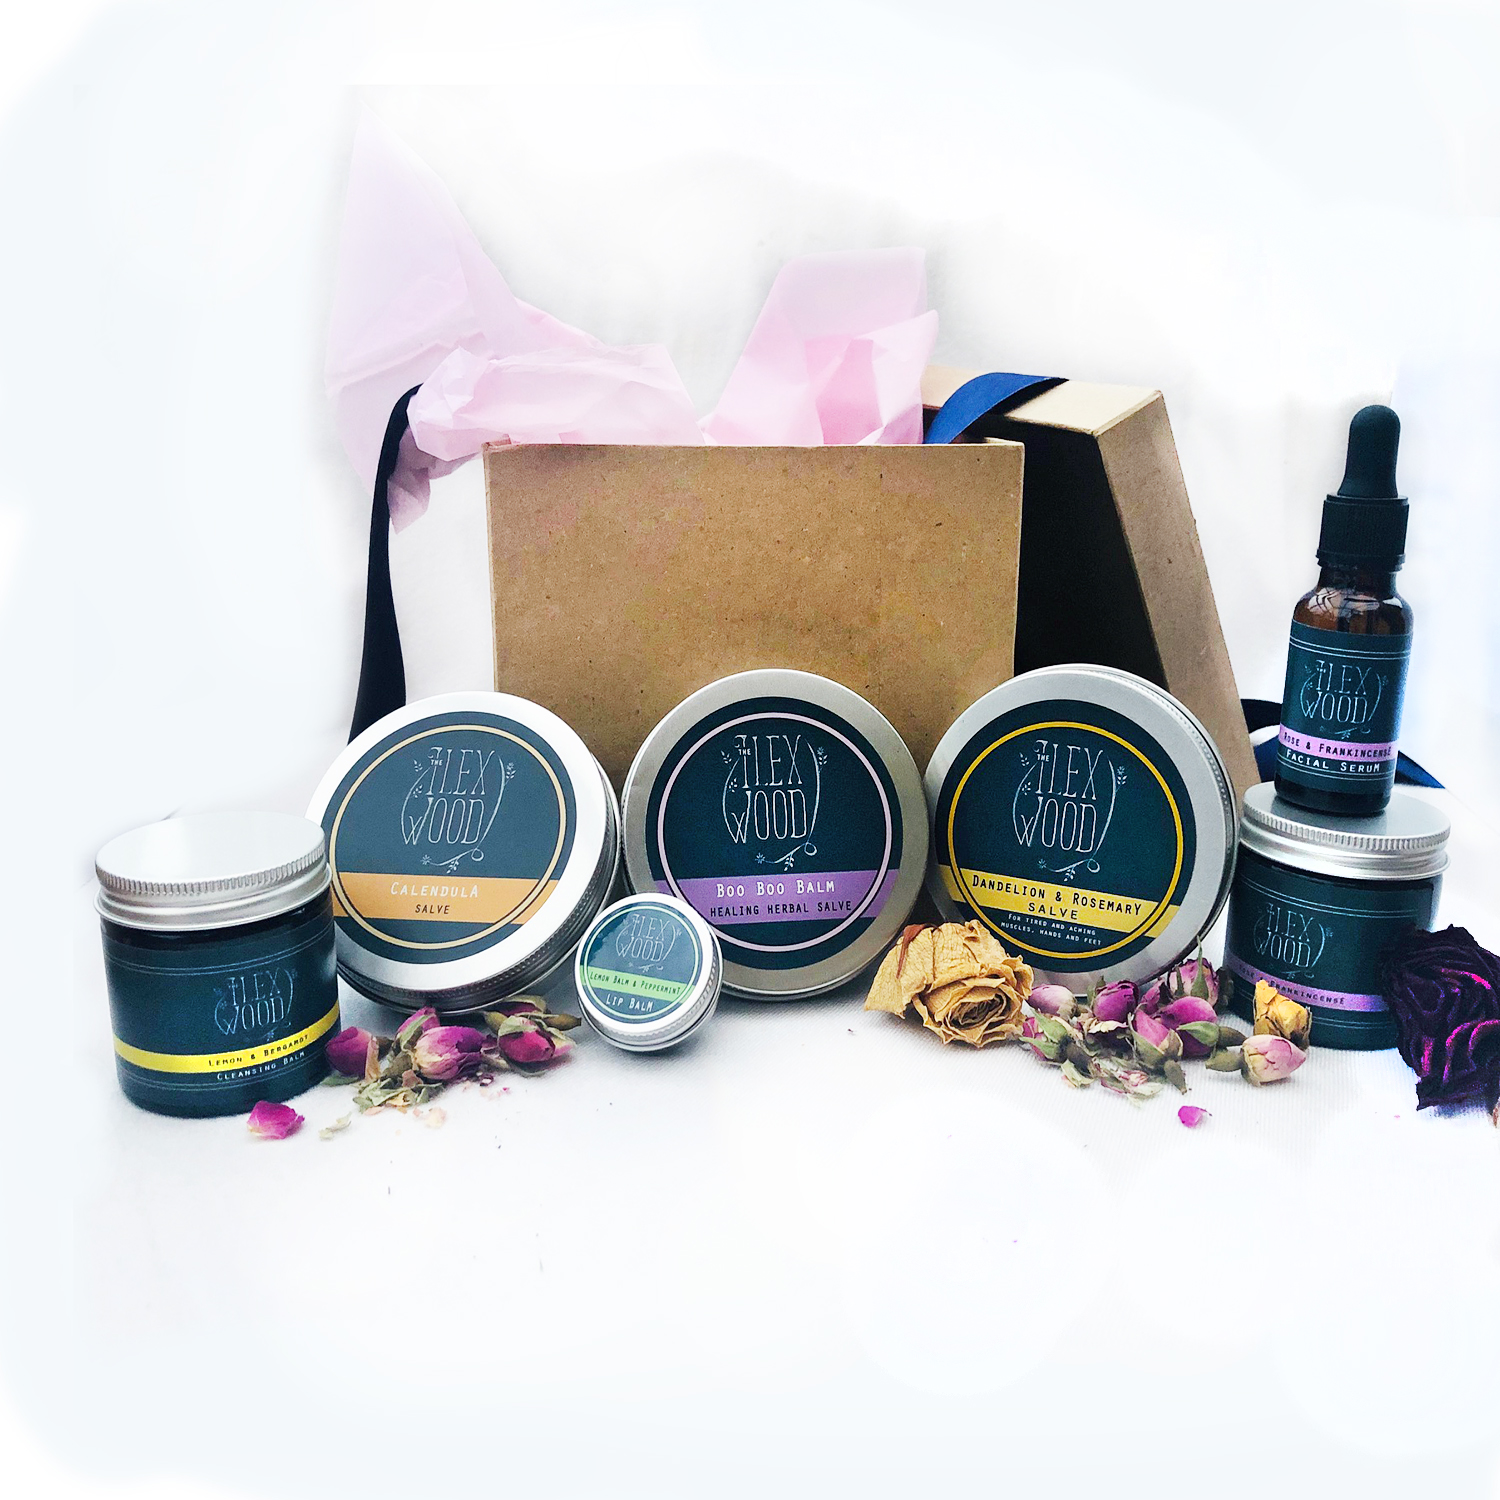 Our range of natural beauty products